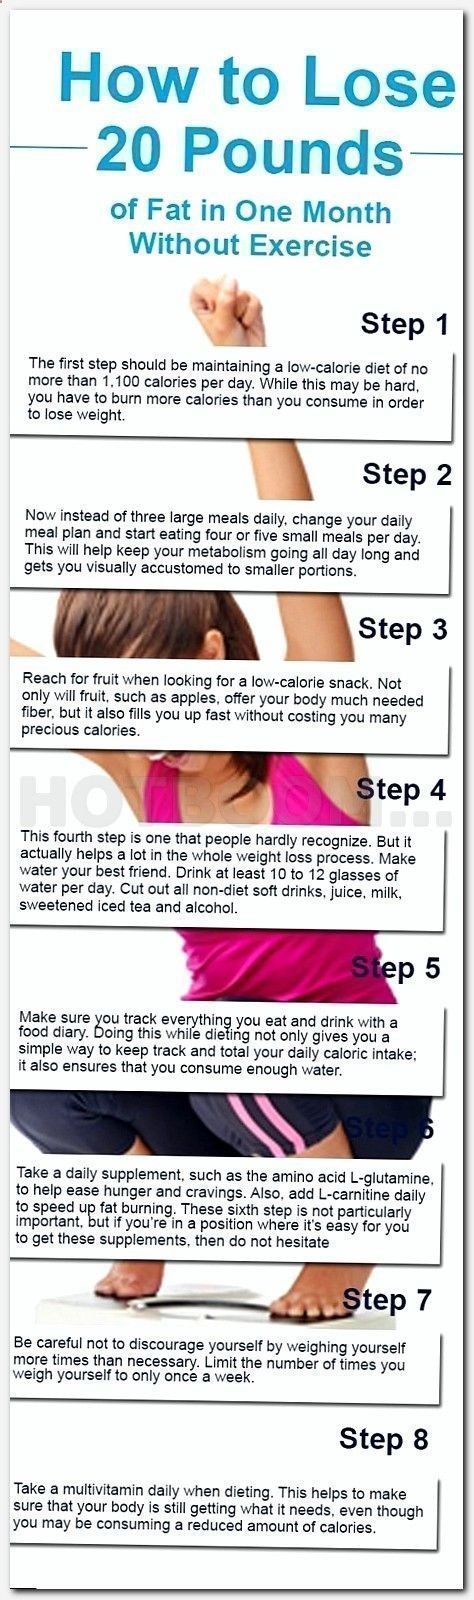 Free fat loss images picture 4